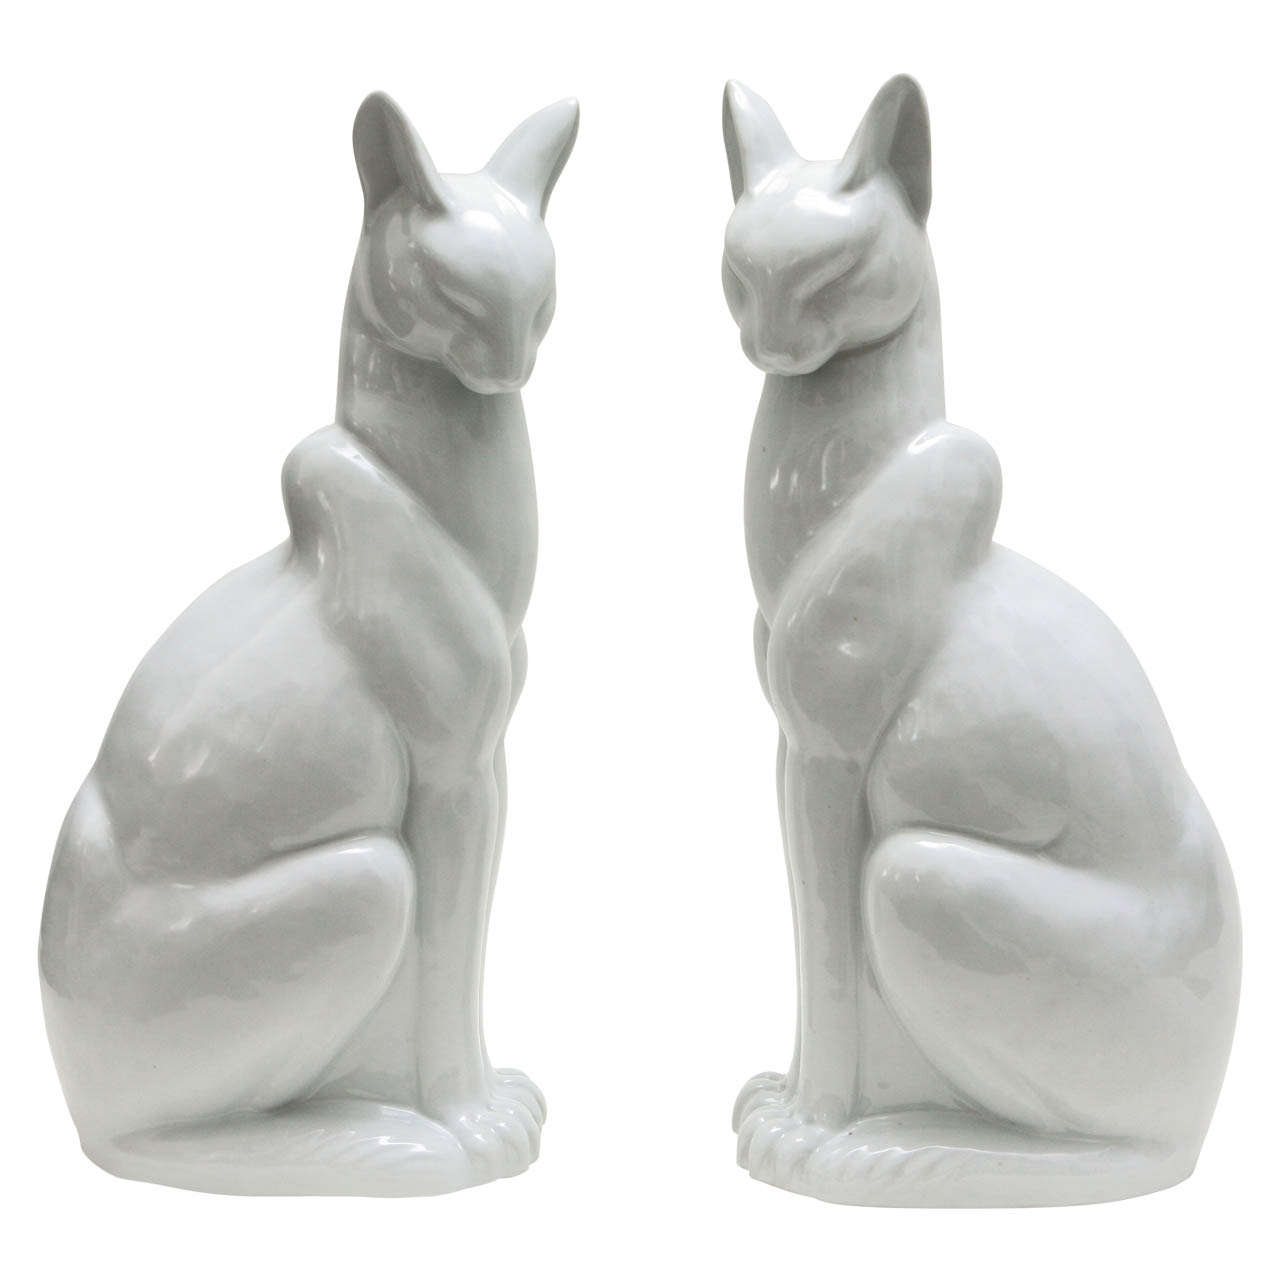 Pair of Japanese Glazed Ceramic Cats